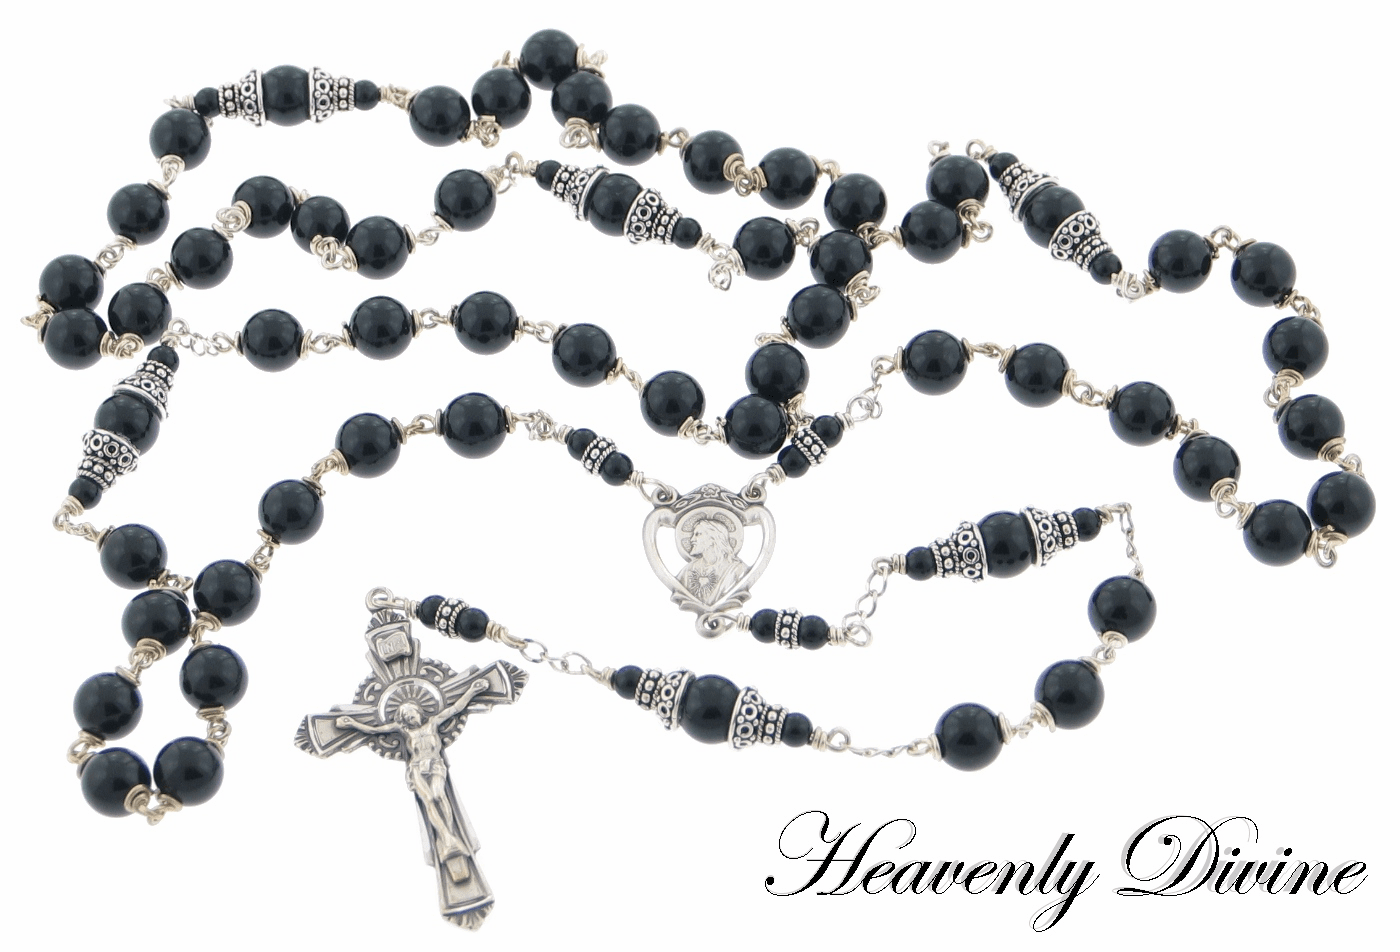 Handmade Black Onyx Sterling Silver Wire Wrapped Rosary by Heavenly Divine